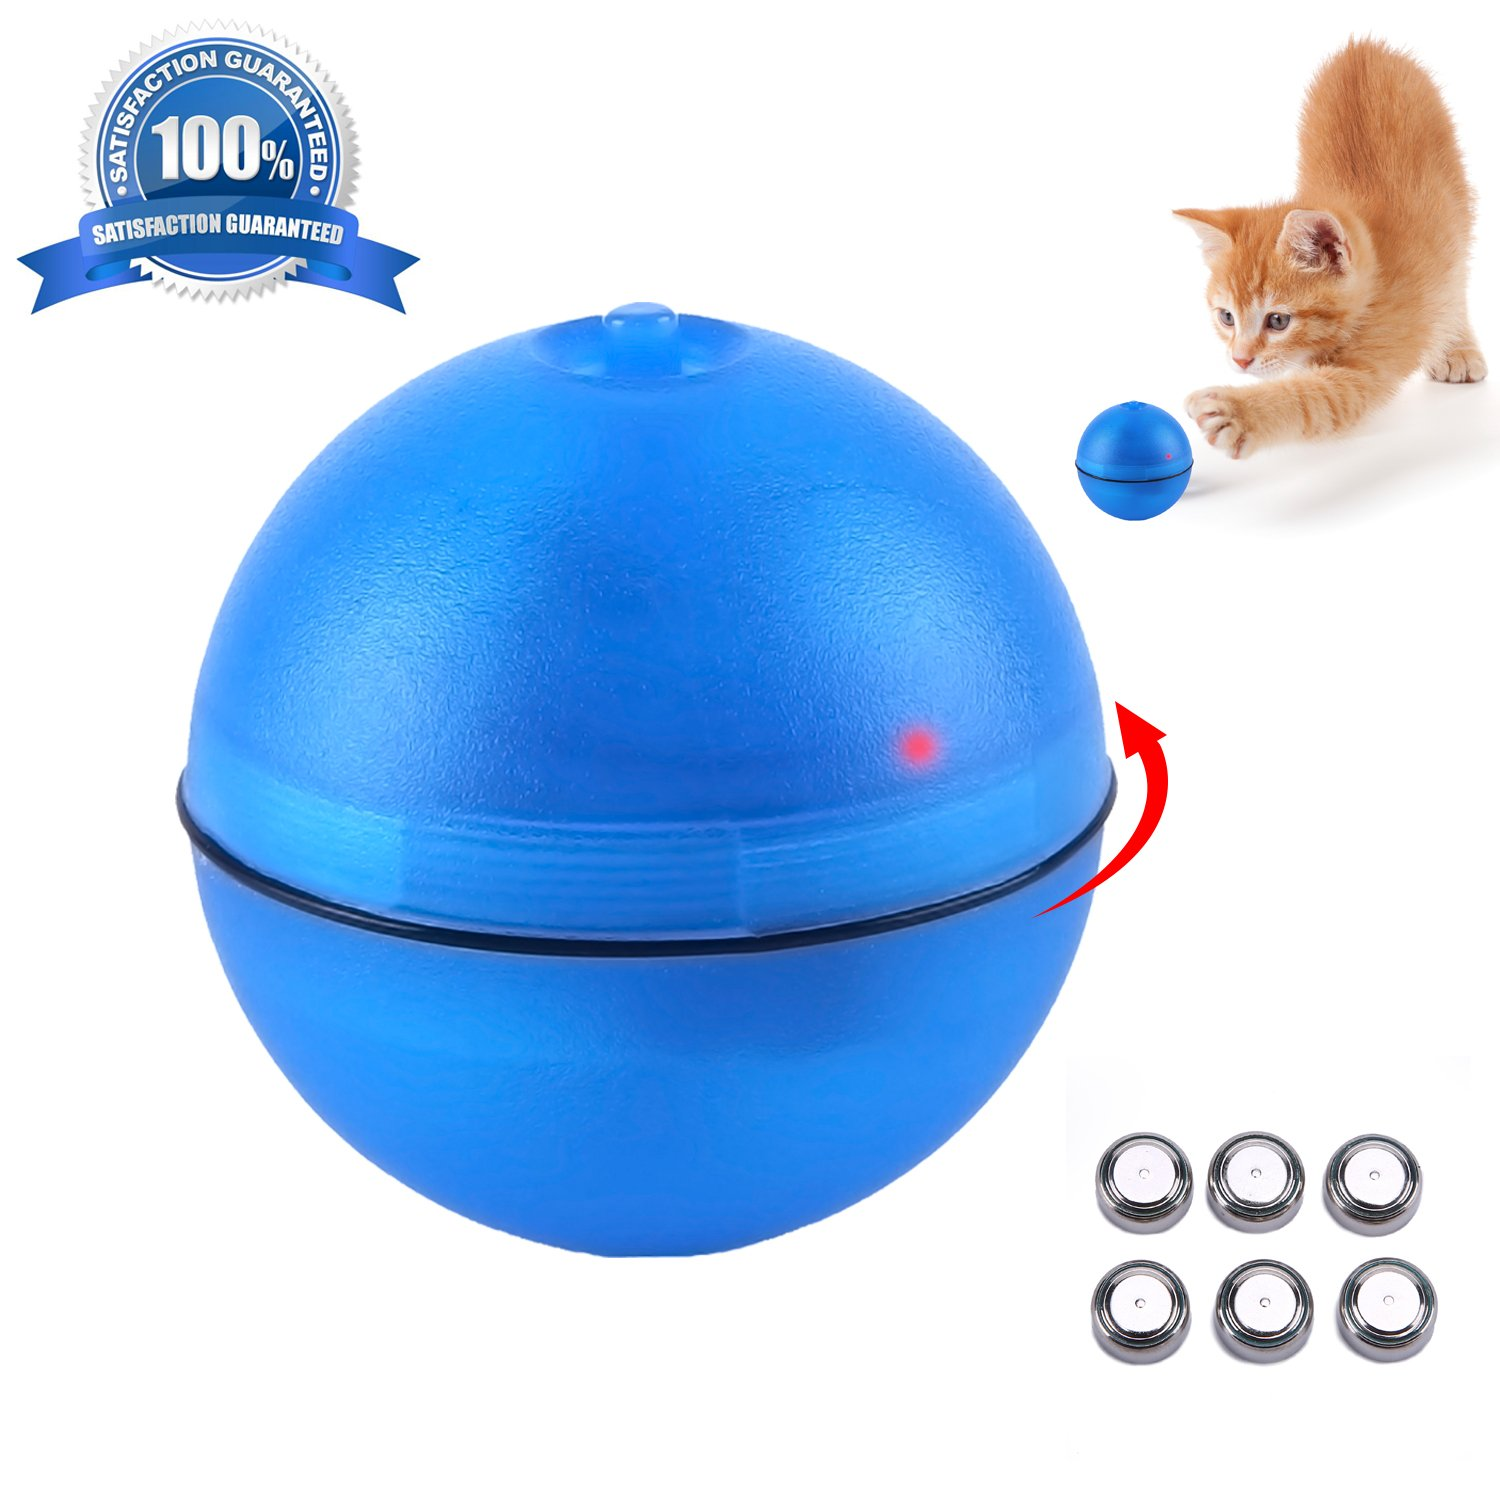 JUOIFIP Interactive Cat Toy 360 Degree Self Rotating Ball Automatic Light Training Tool Endless Fun for Cat/Kitty/Kitten/Puppy/Dogs